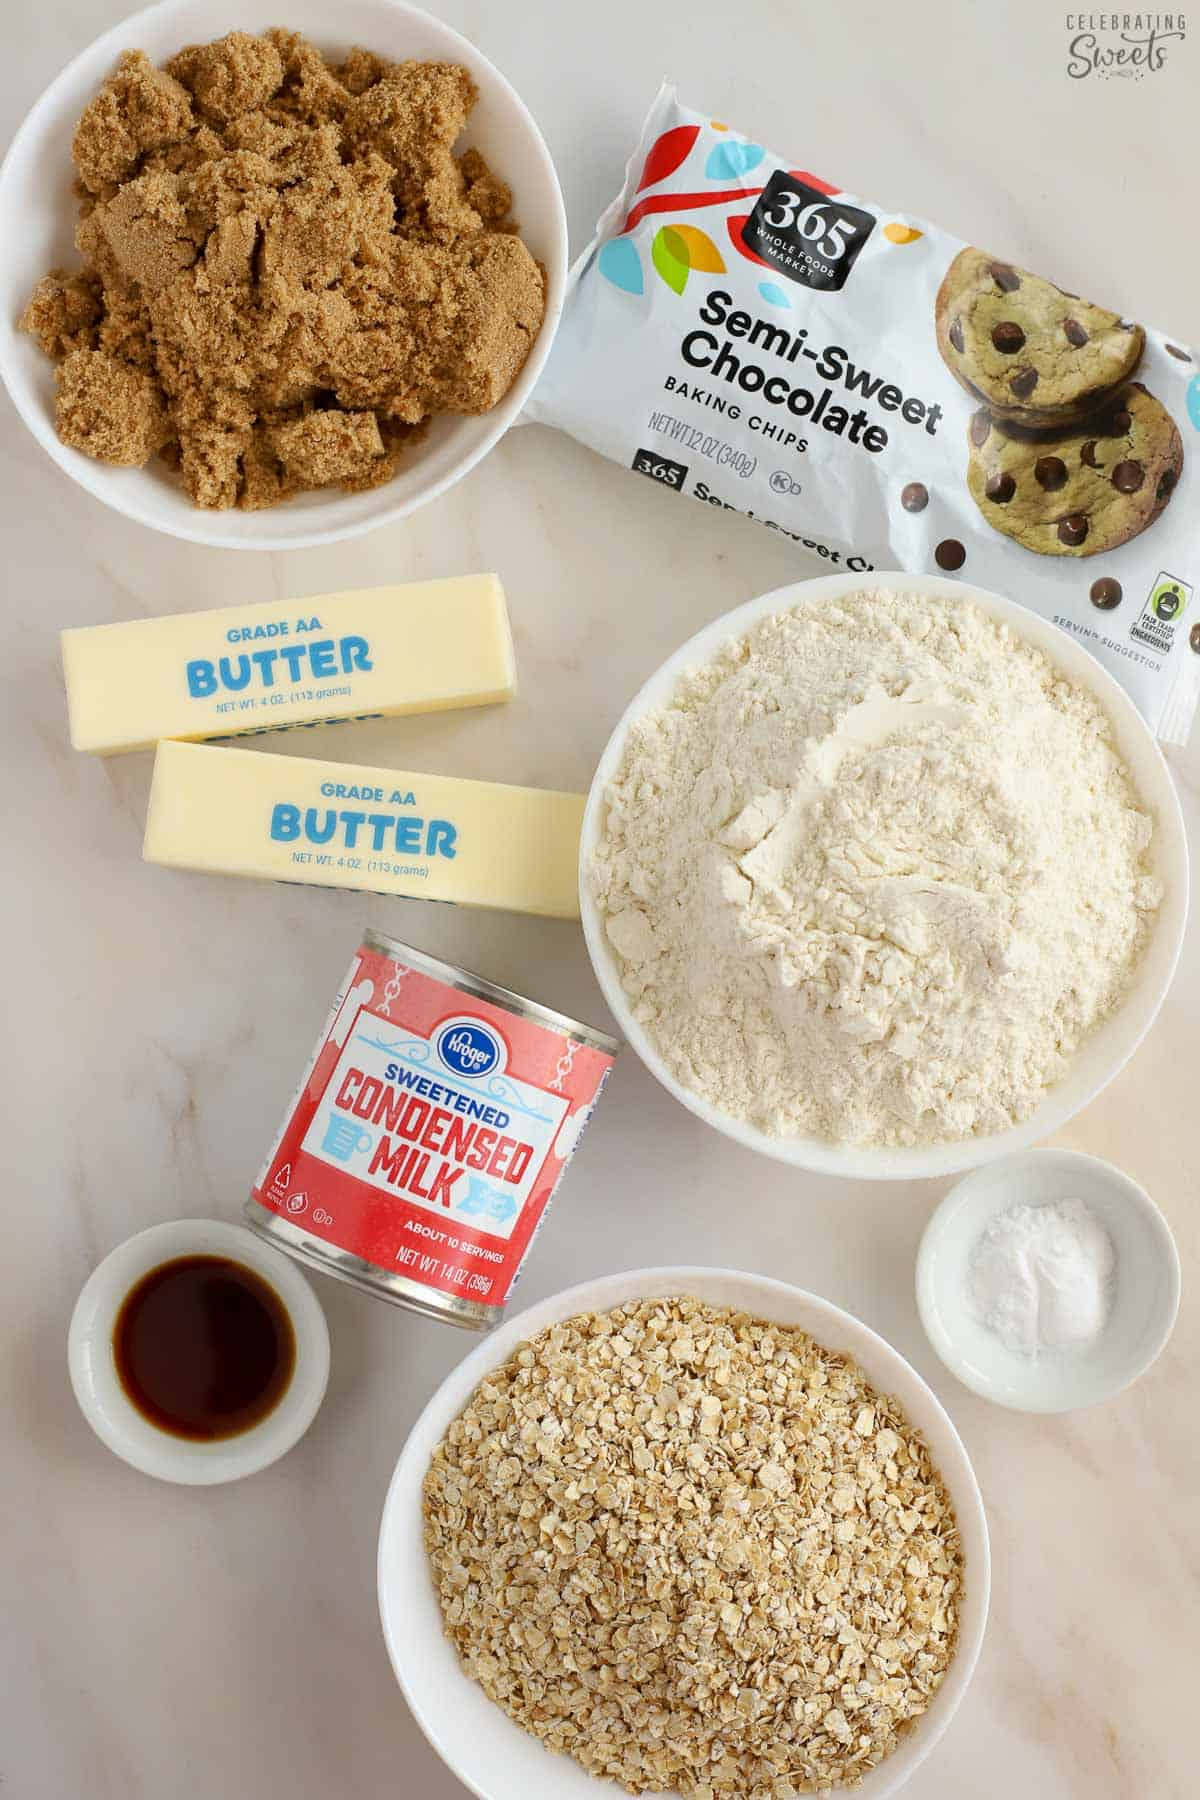 Ingredients for Oatmeal Fudge Bars - Oats, flour, brown sugar, condensed milk, chocolate chips, butter, vanilla.